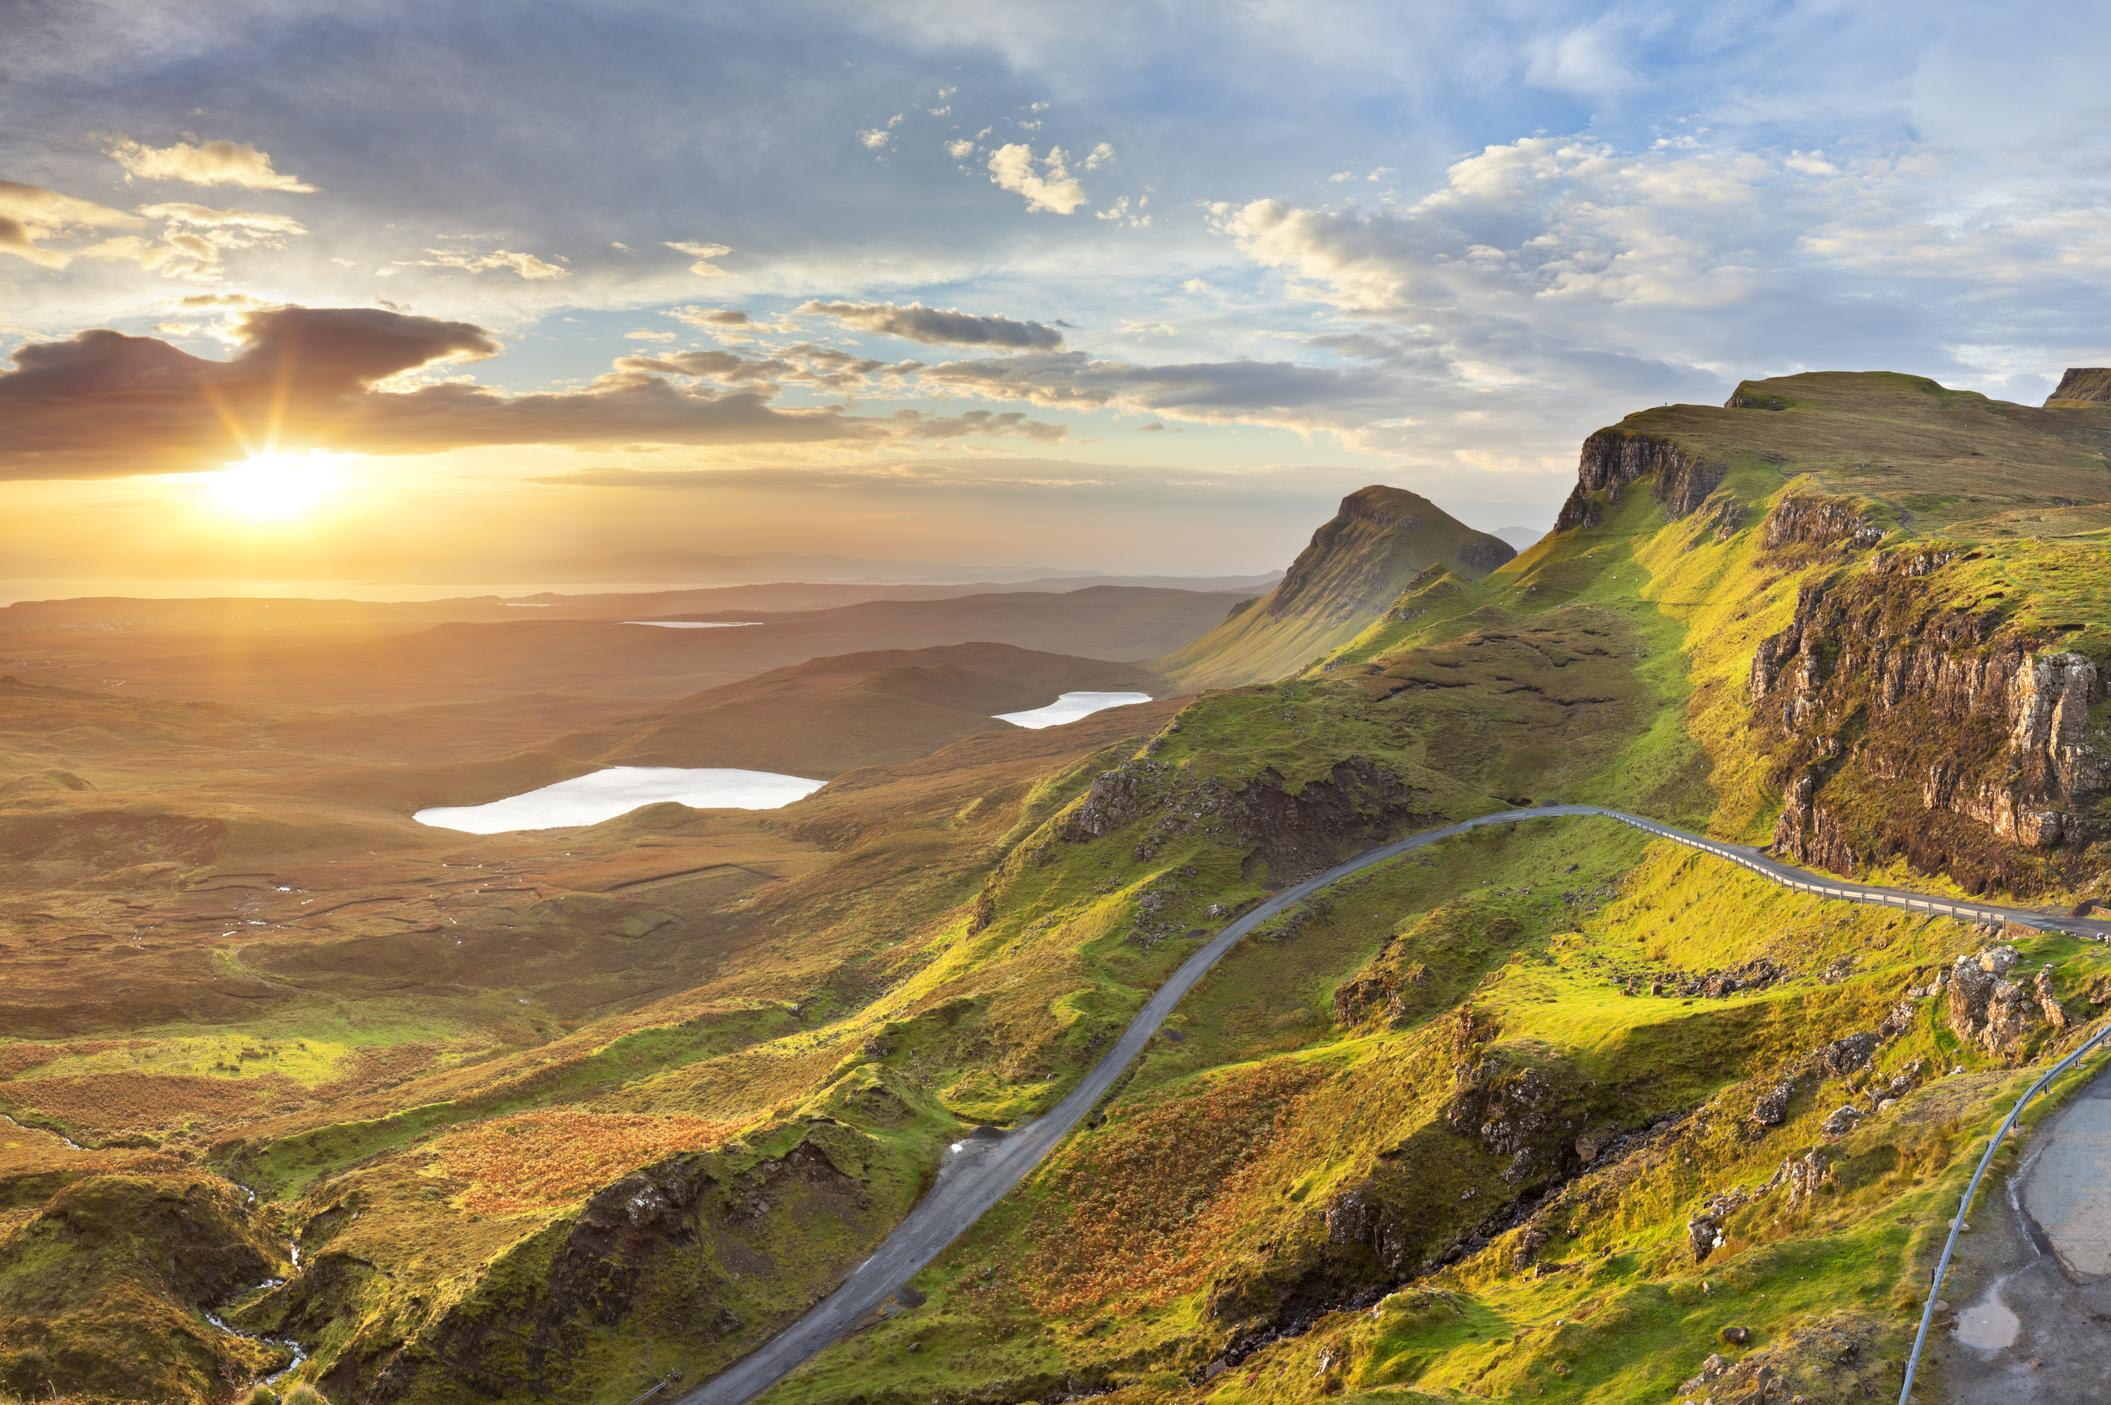 The Isle of Skye is a popular tourist destination thanks to its famous scenery and stunning landscapes. The island has a rich history which dates back as far as the Highland Clearances and Jacobite Rebellion.